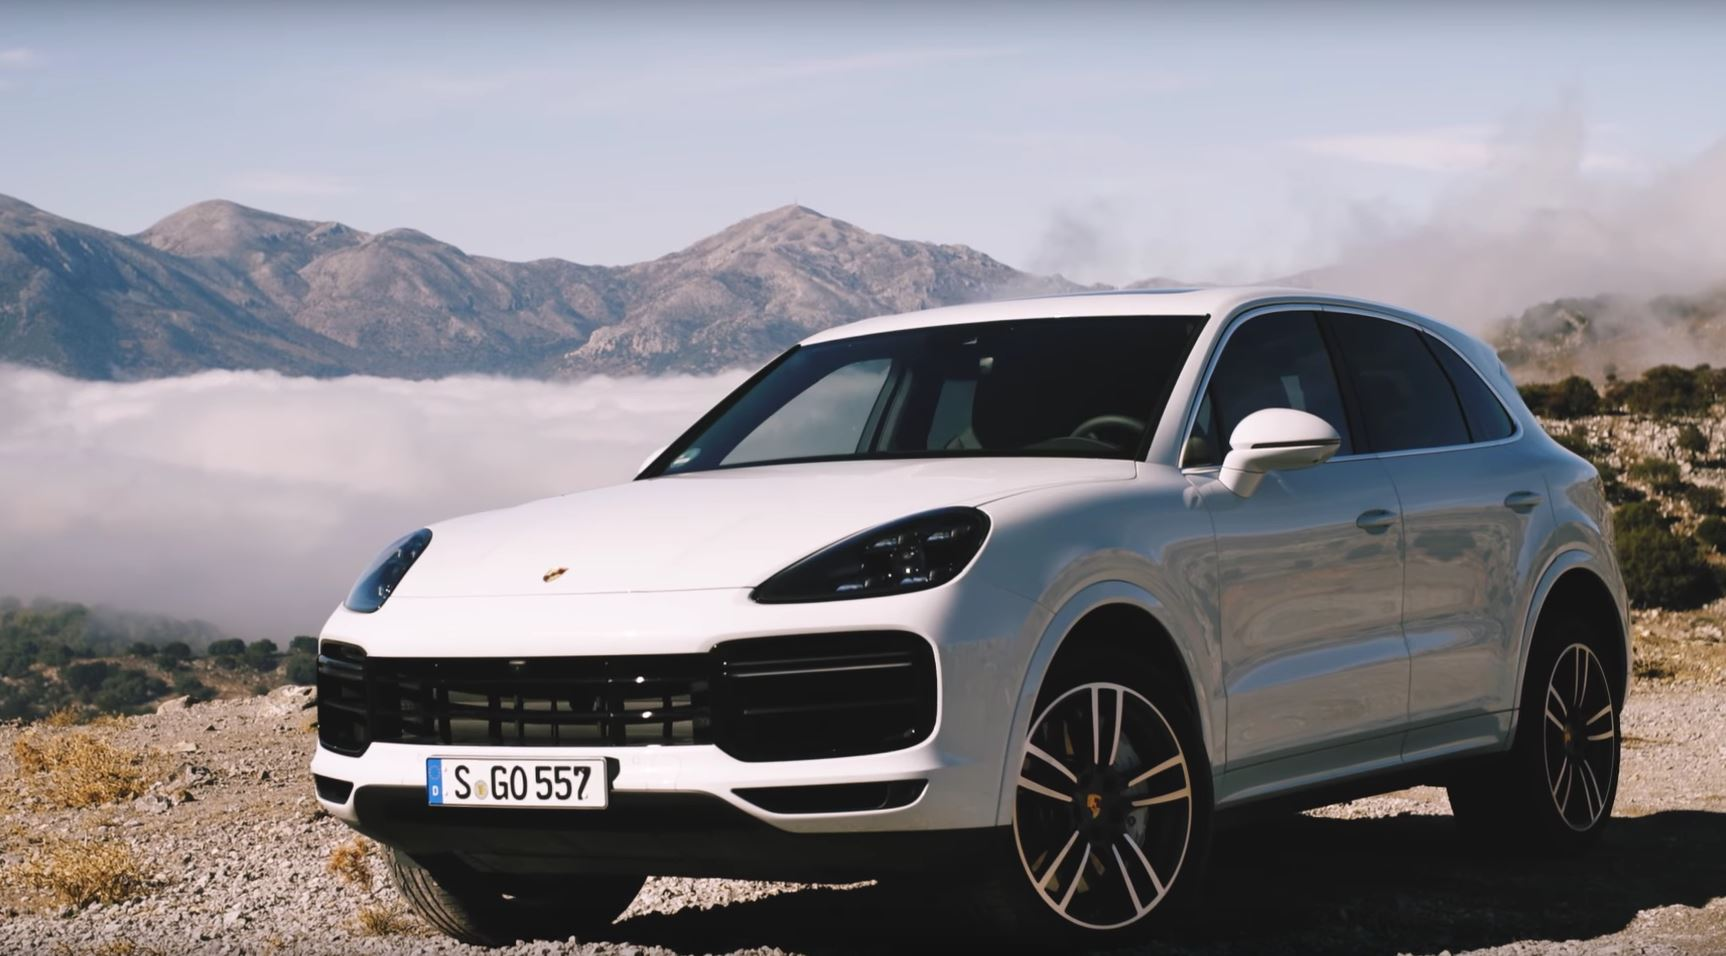 2019 porsche cayenne turbo review says almost everything is better autoevolution. Black Bedroom Furniture Sets. Home Design Ideas